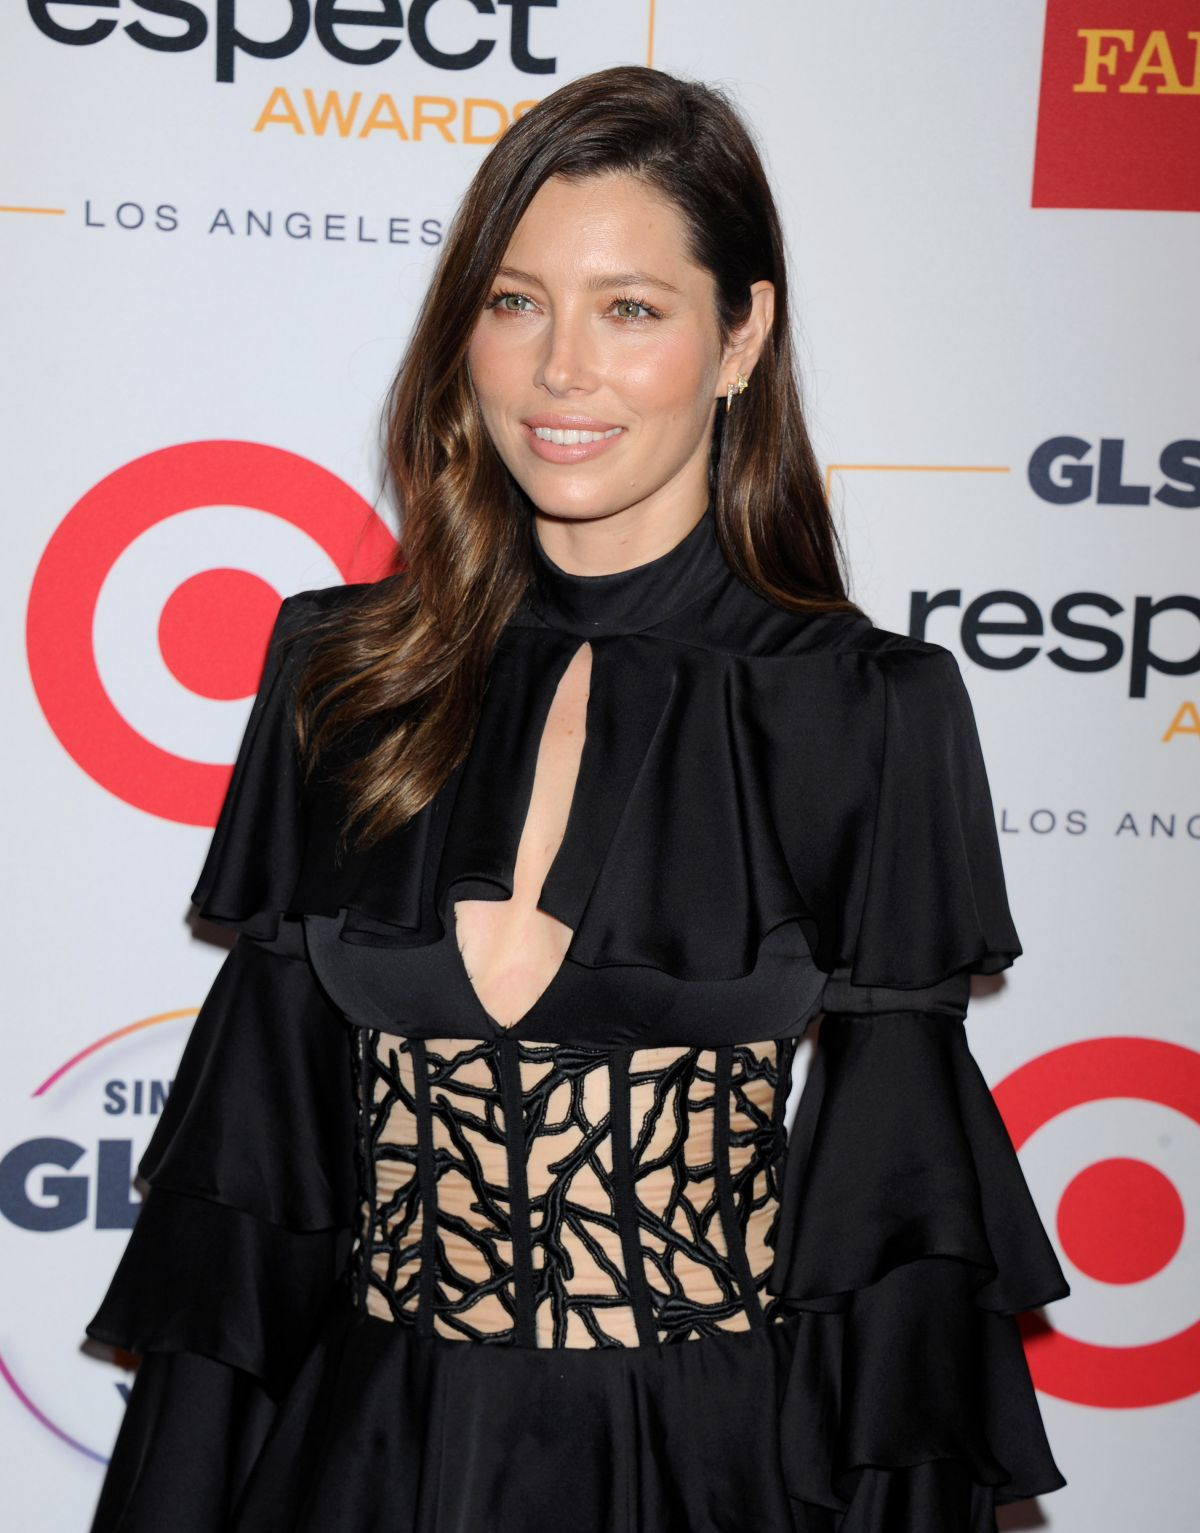 JESSICA BIEL at 2015 glsen Respect Awards in Beverly Hills 10/23/2015